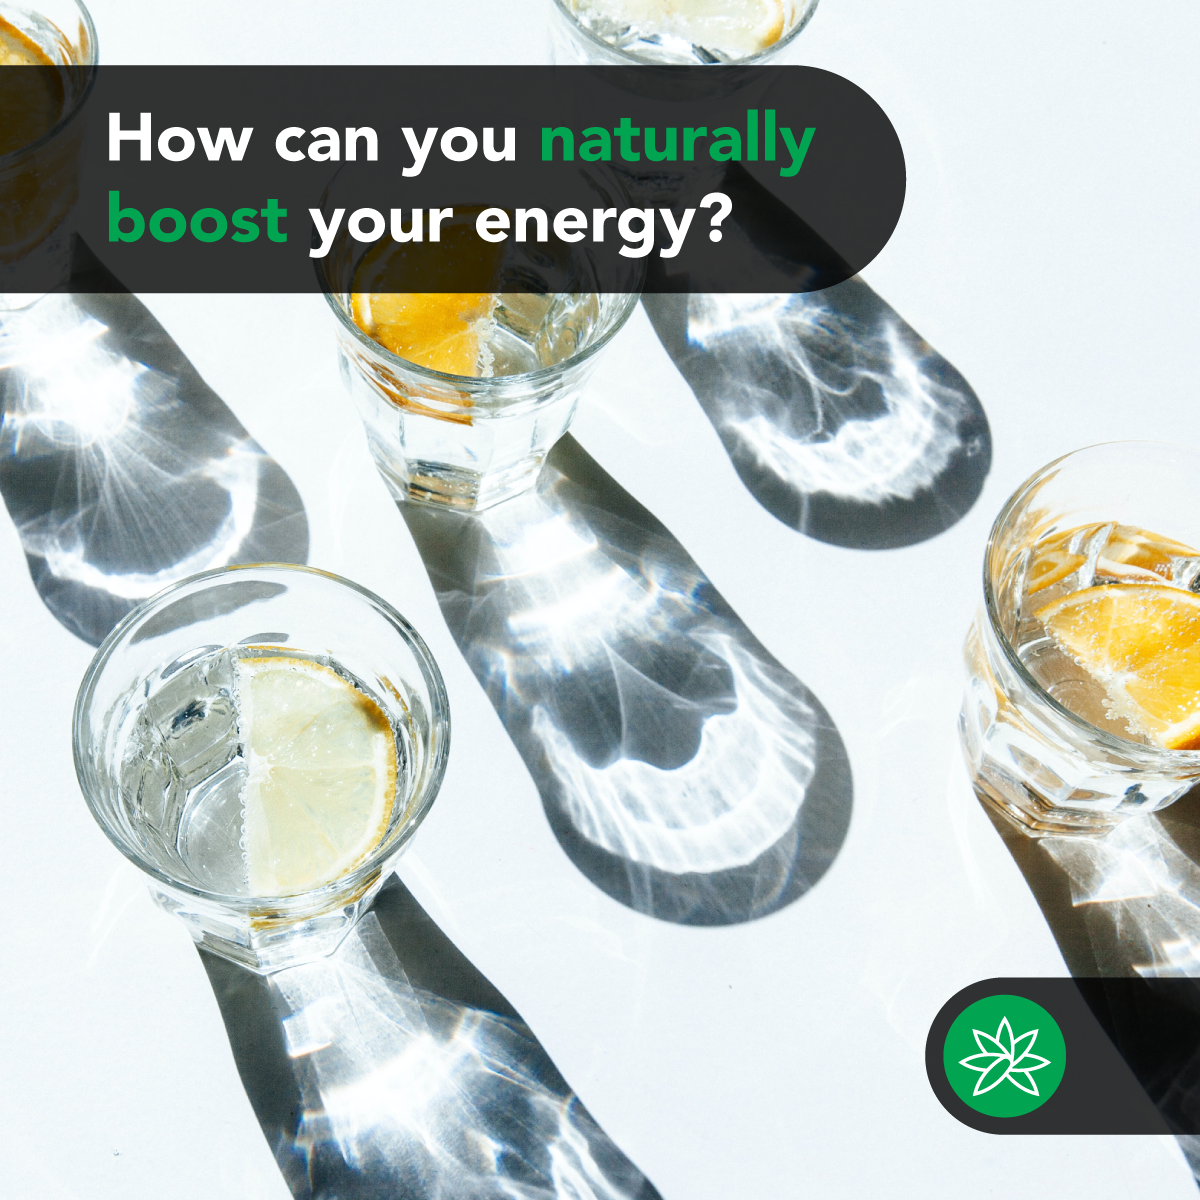 How can you naturally boost your energy